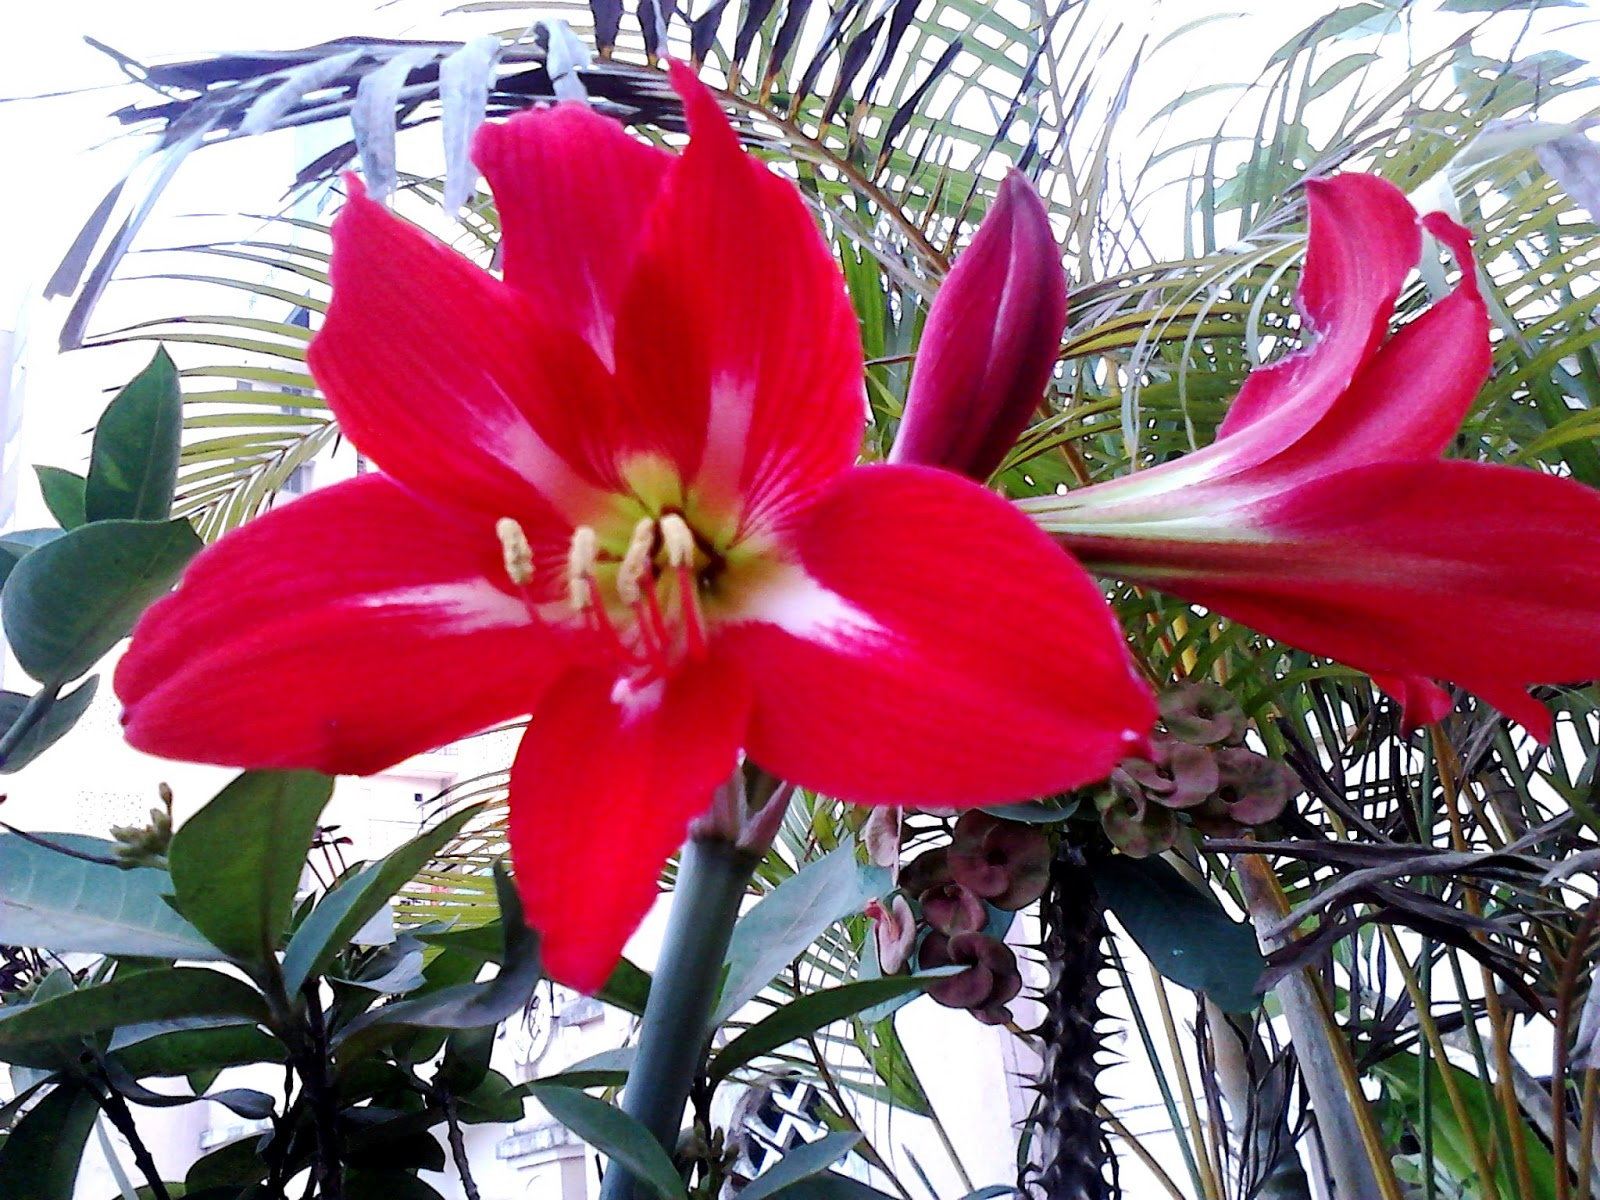 garden care simplified big amaryllis red lily flowering plant tips